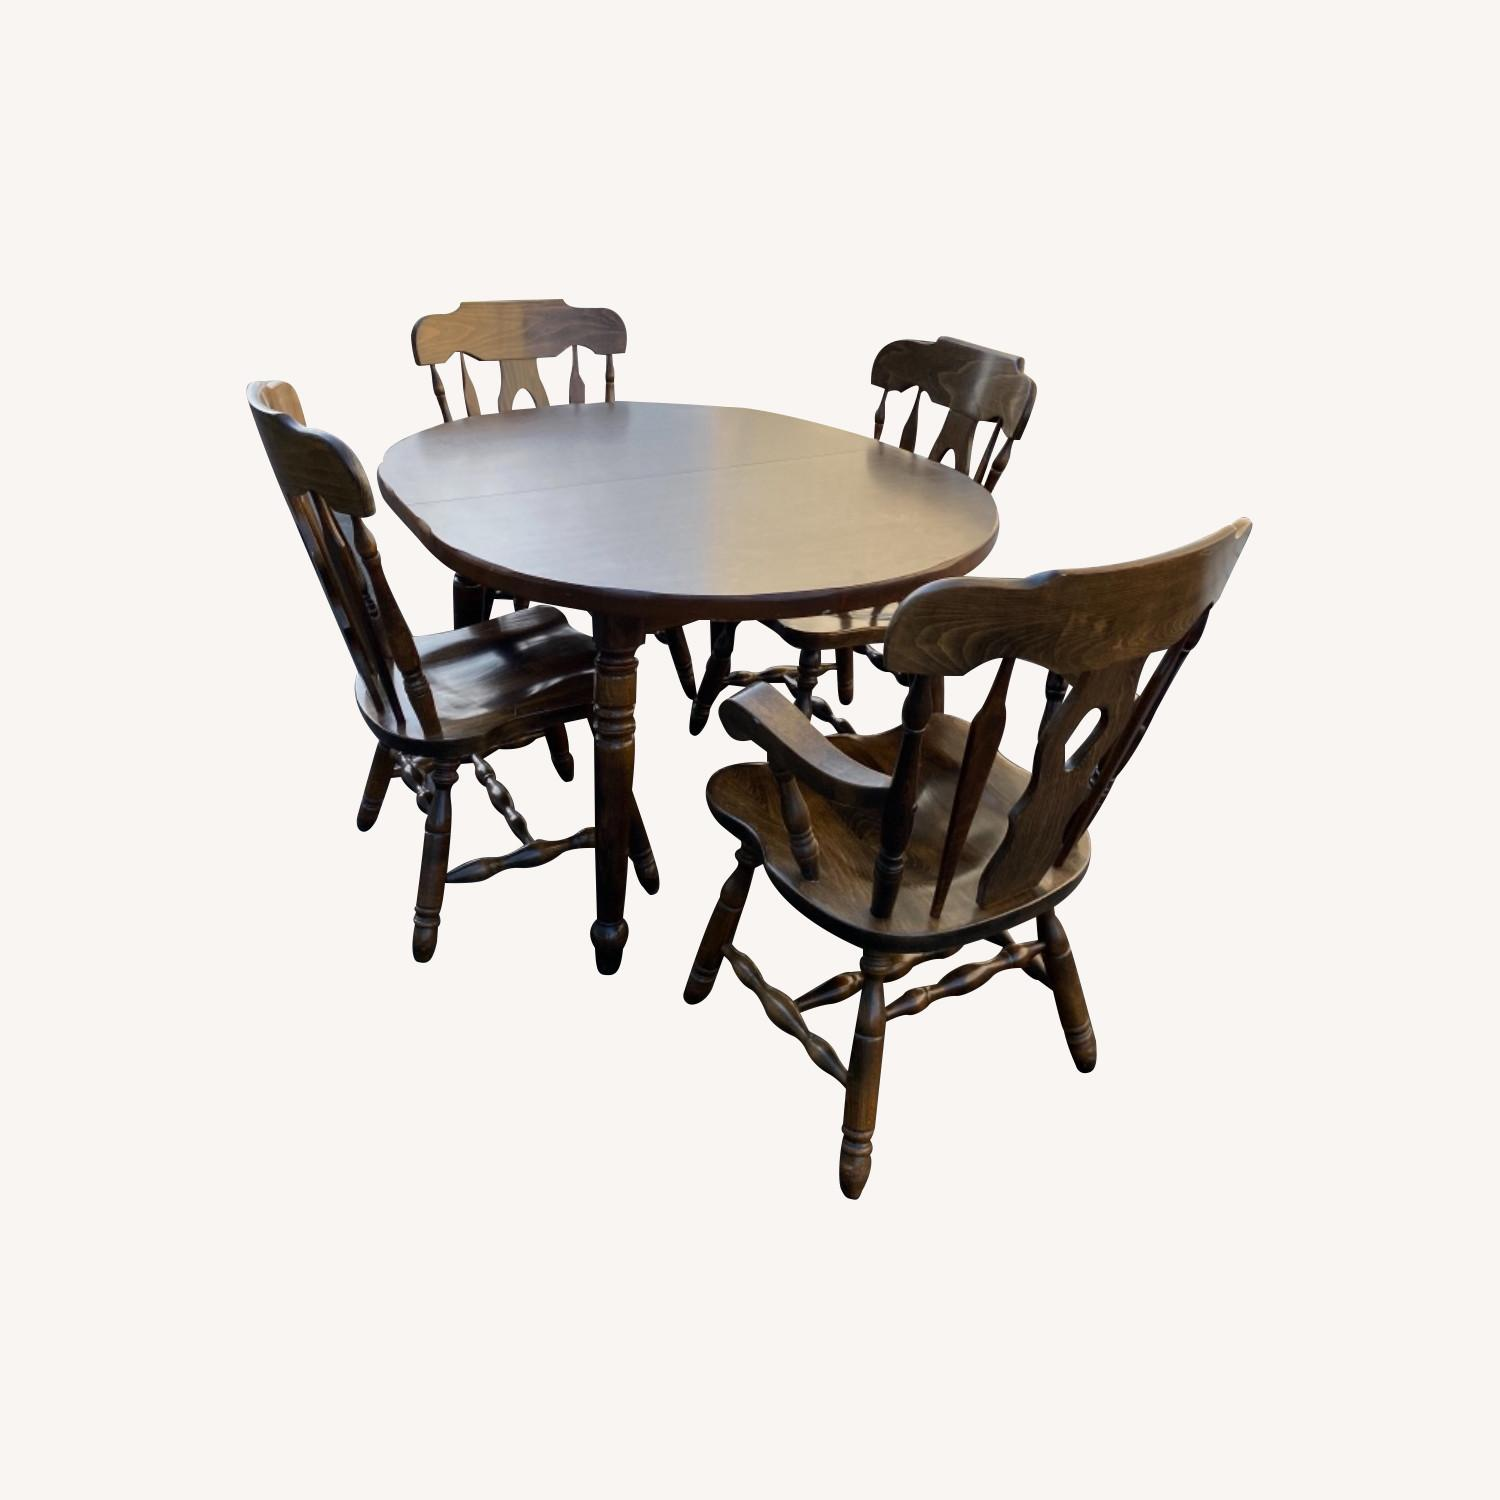 Solid Wood Dining Table with 4 Chairs - image-0